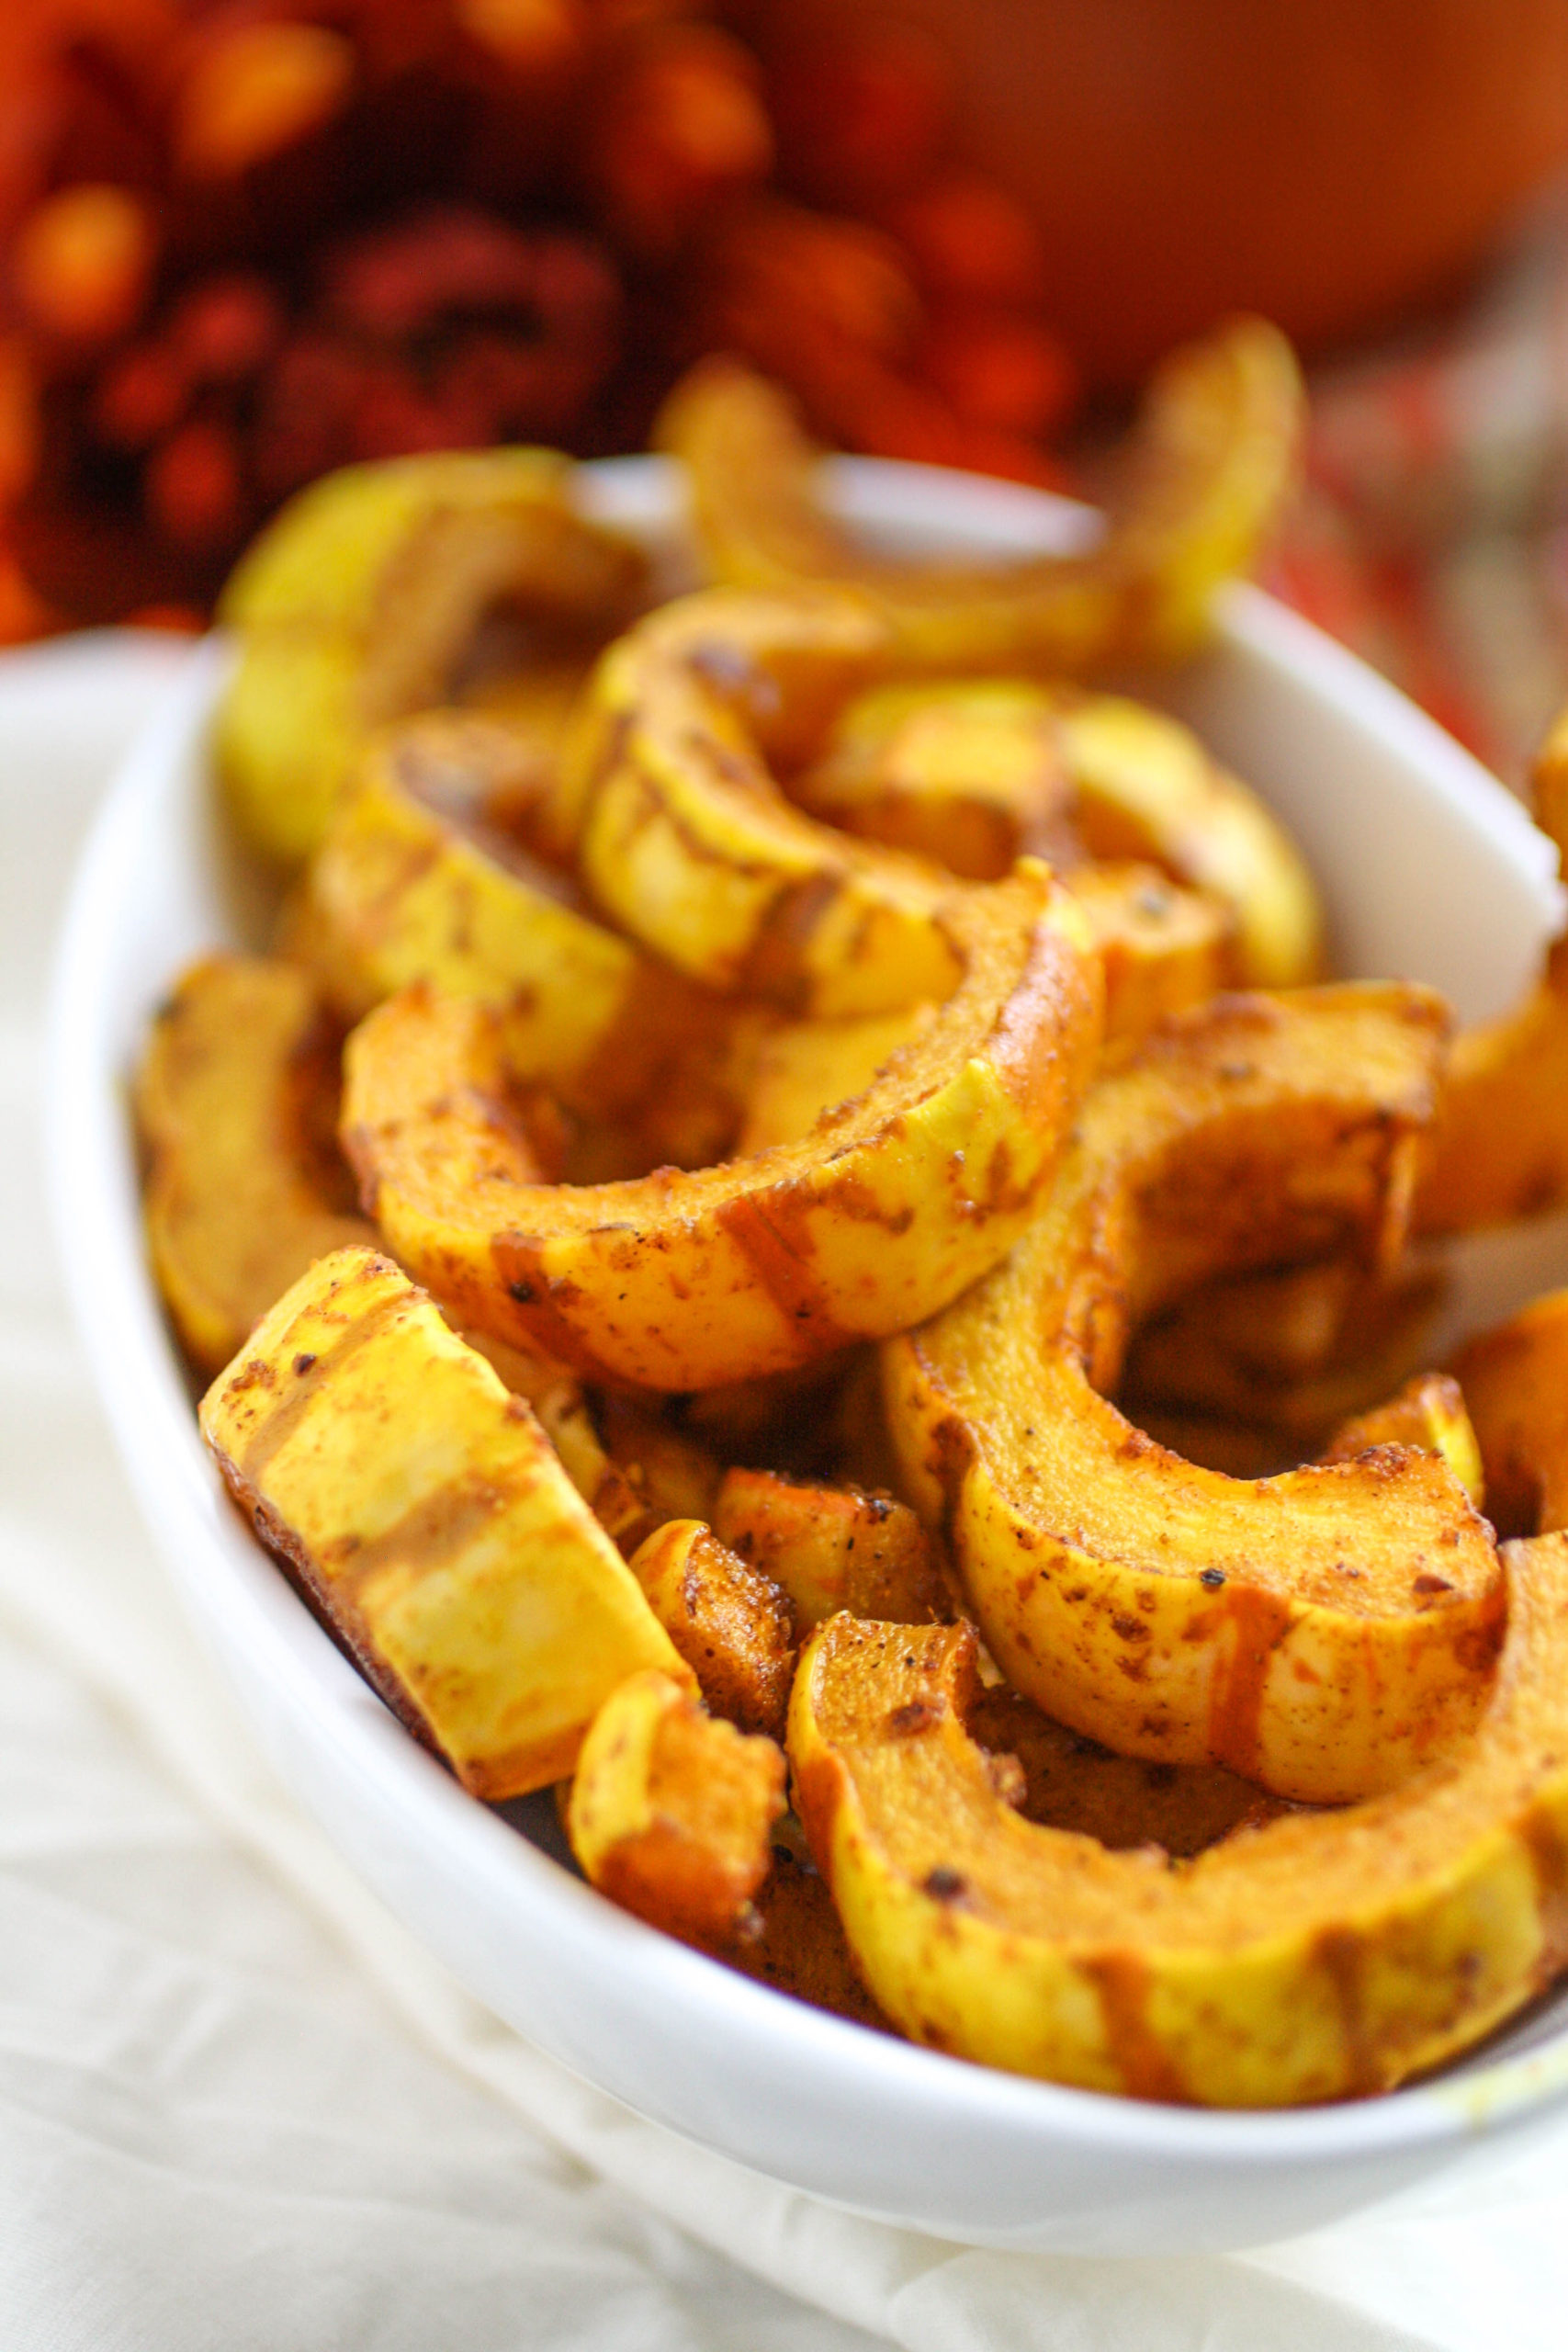 Curry-Roasted Delicata Squash is a fabulous side dish to serve this season!